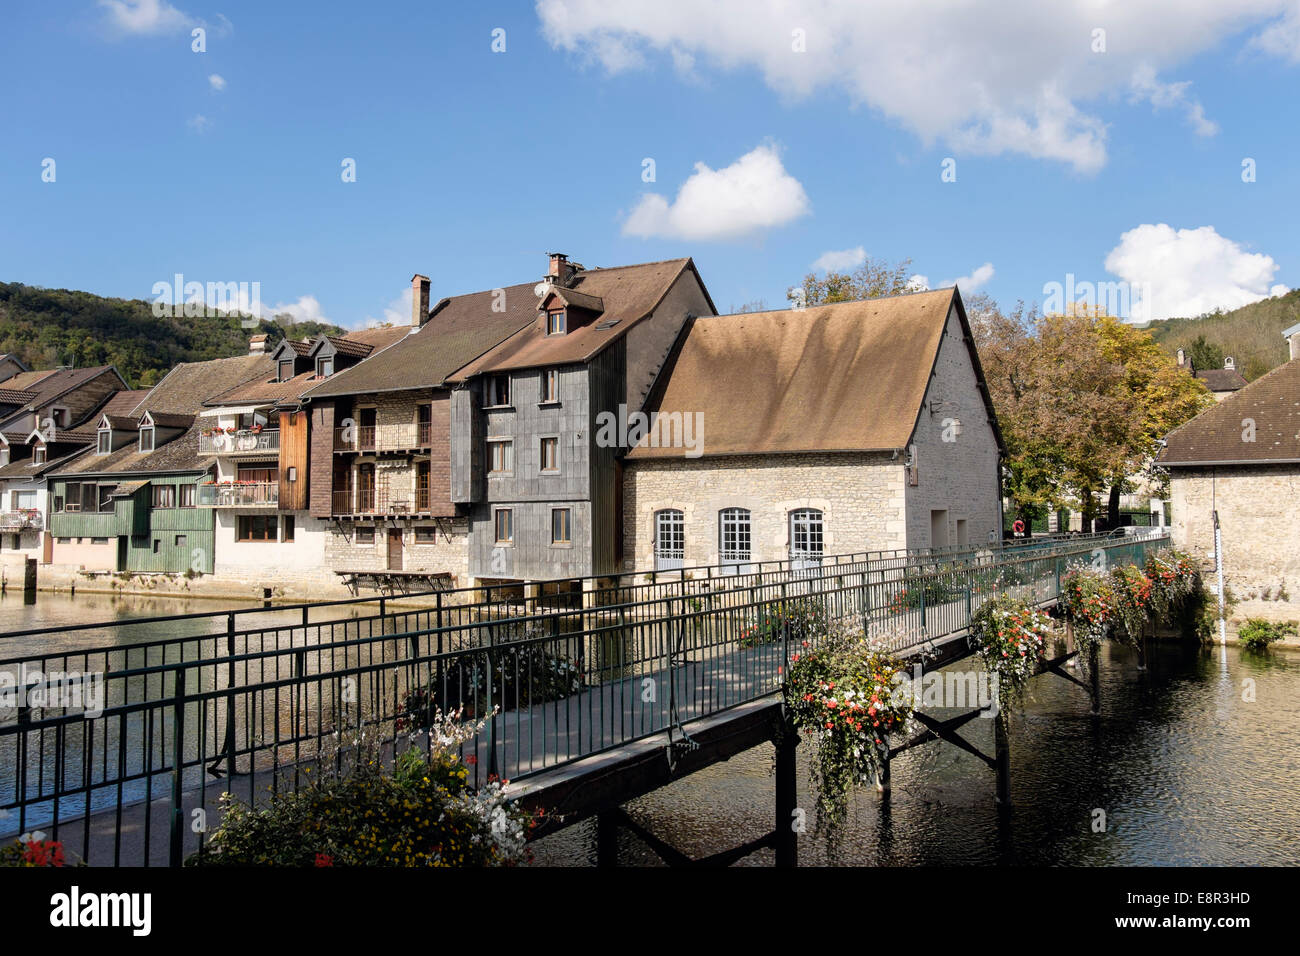 River Loue footbridge and quaint old houses in Ornans, Doubs, Franche Comte, France, Europe - Stock Image